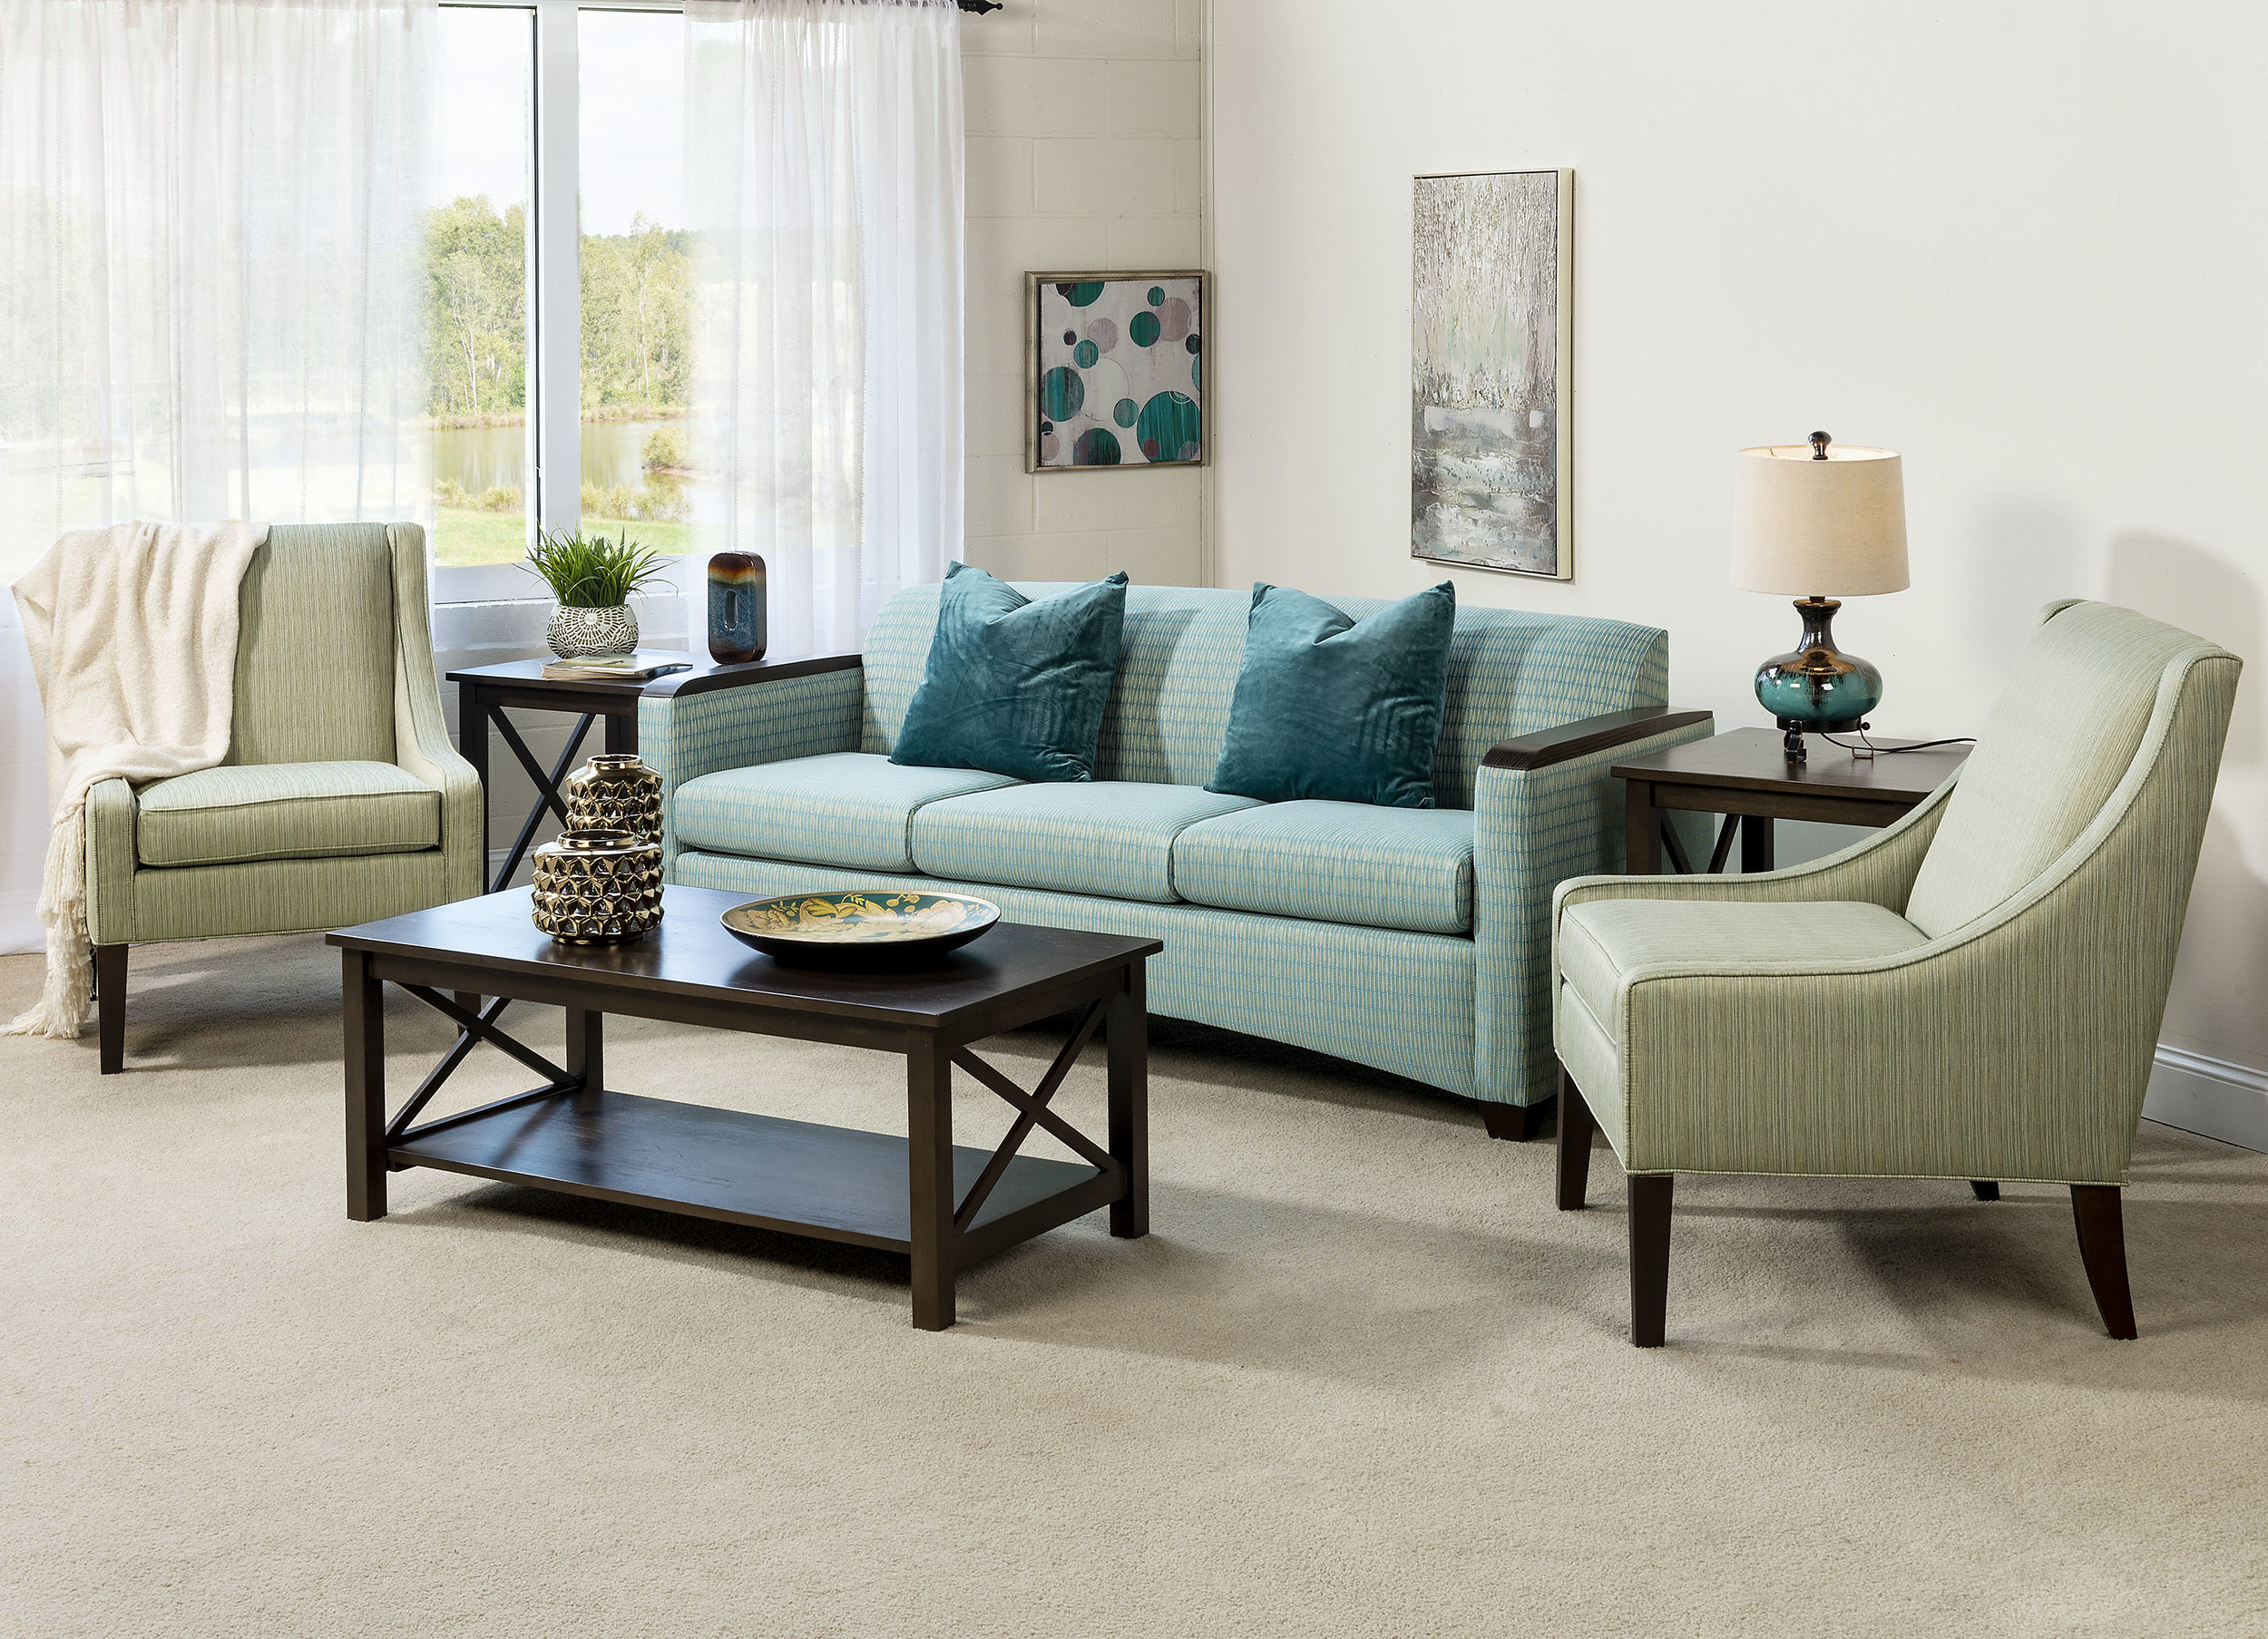 meadowbrook sofa with southport chairs and crossings tables